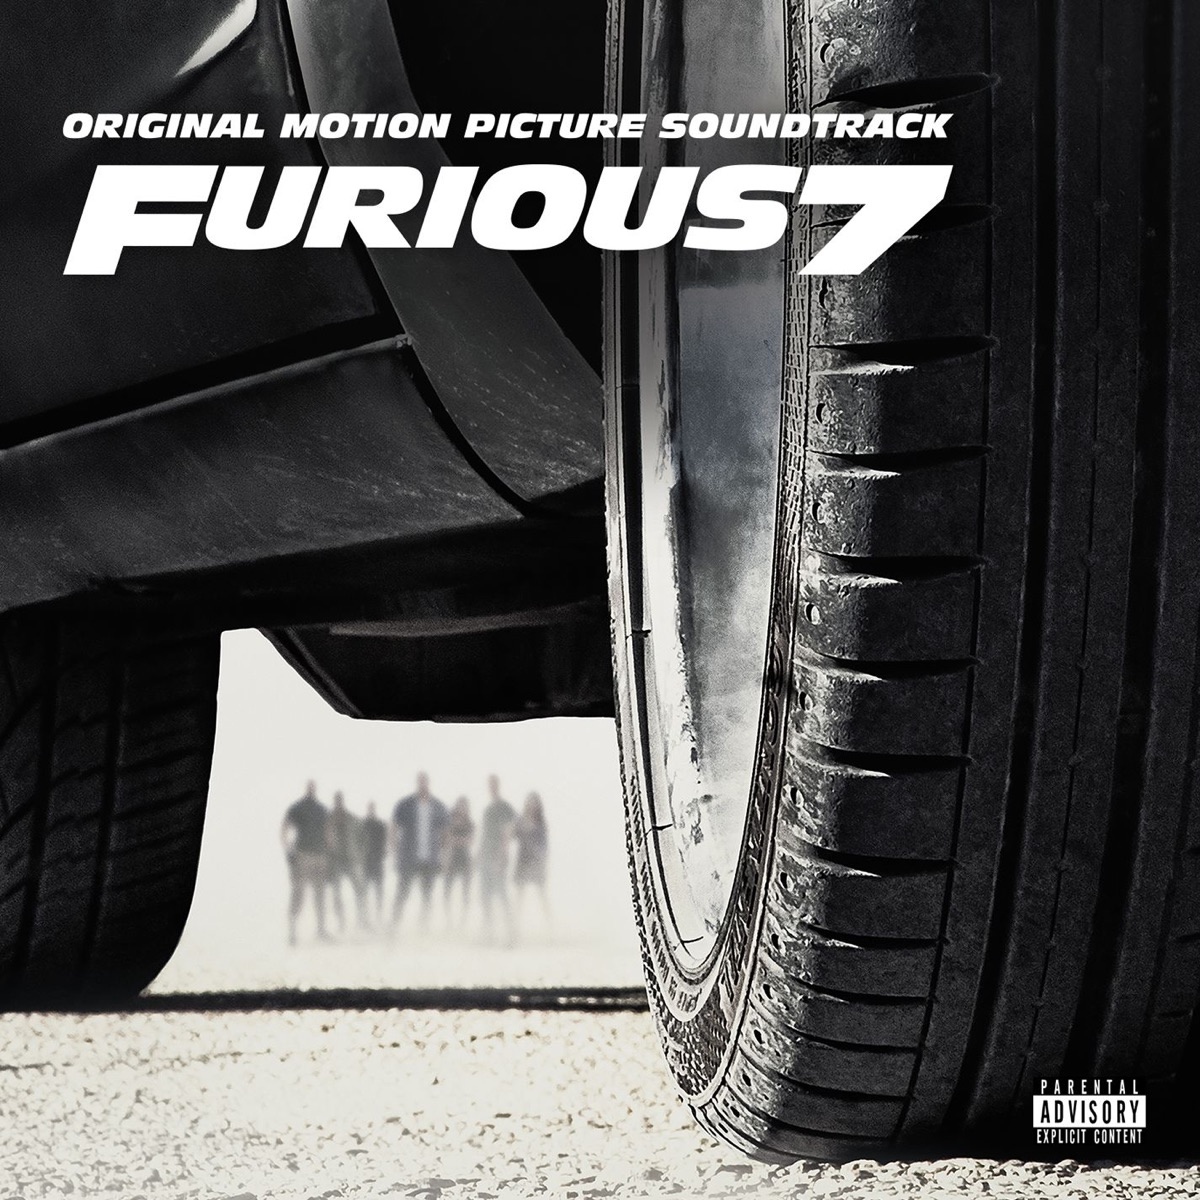 Furious 7 Original Motion Picture Soundtrack Various Artists CD cover